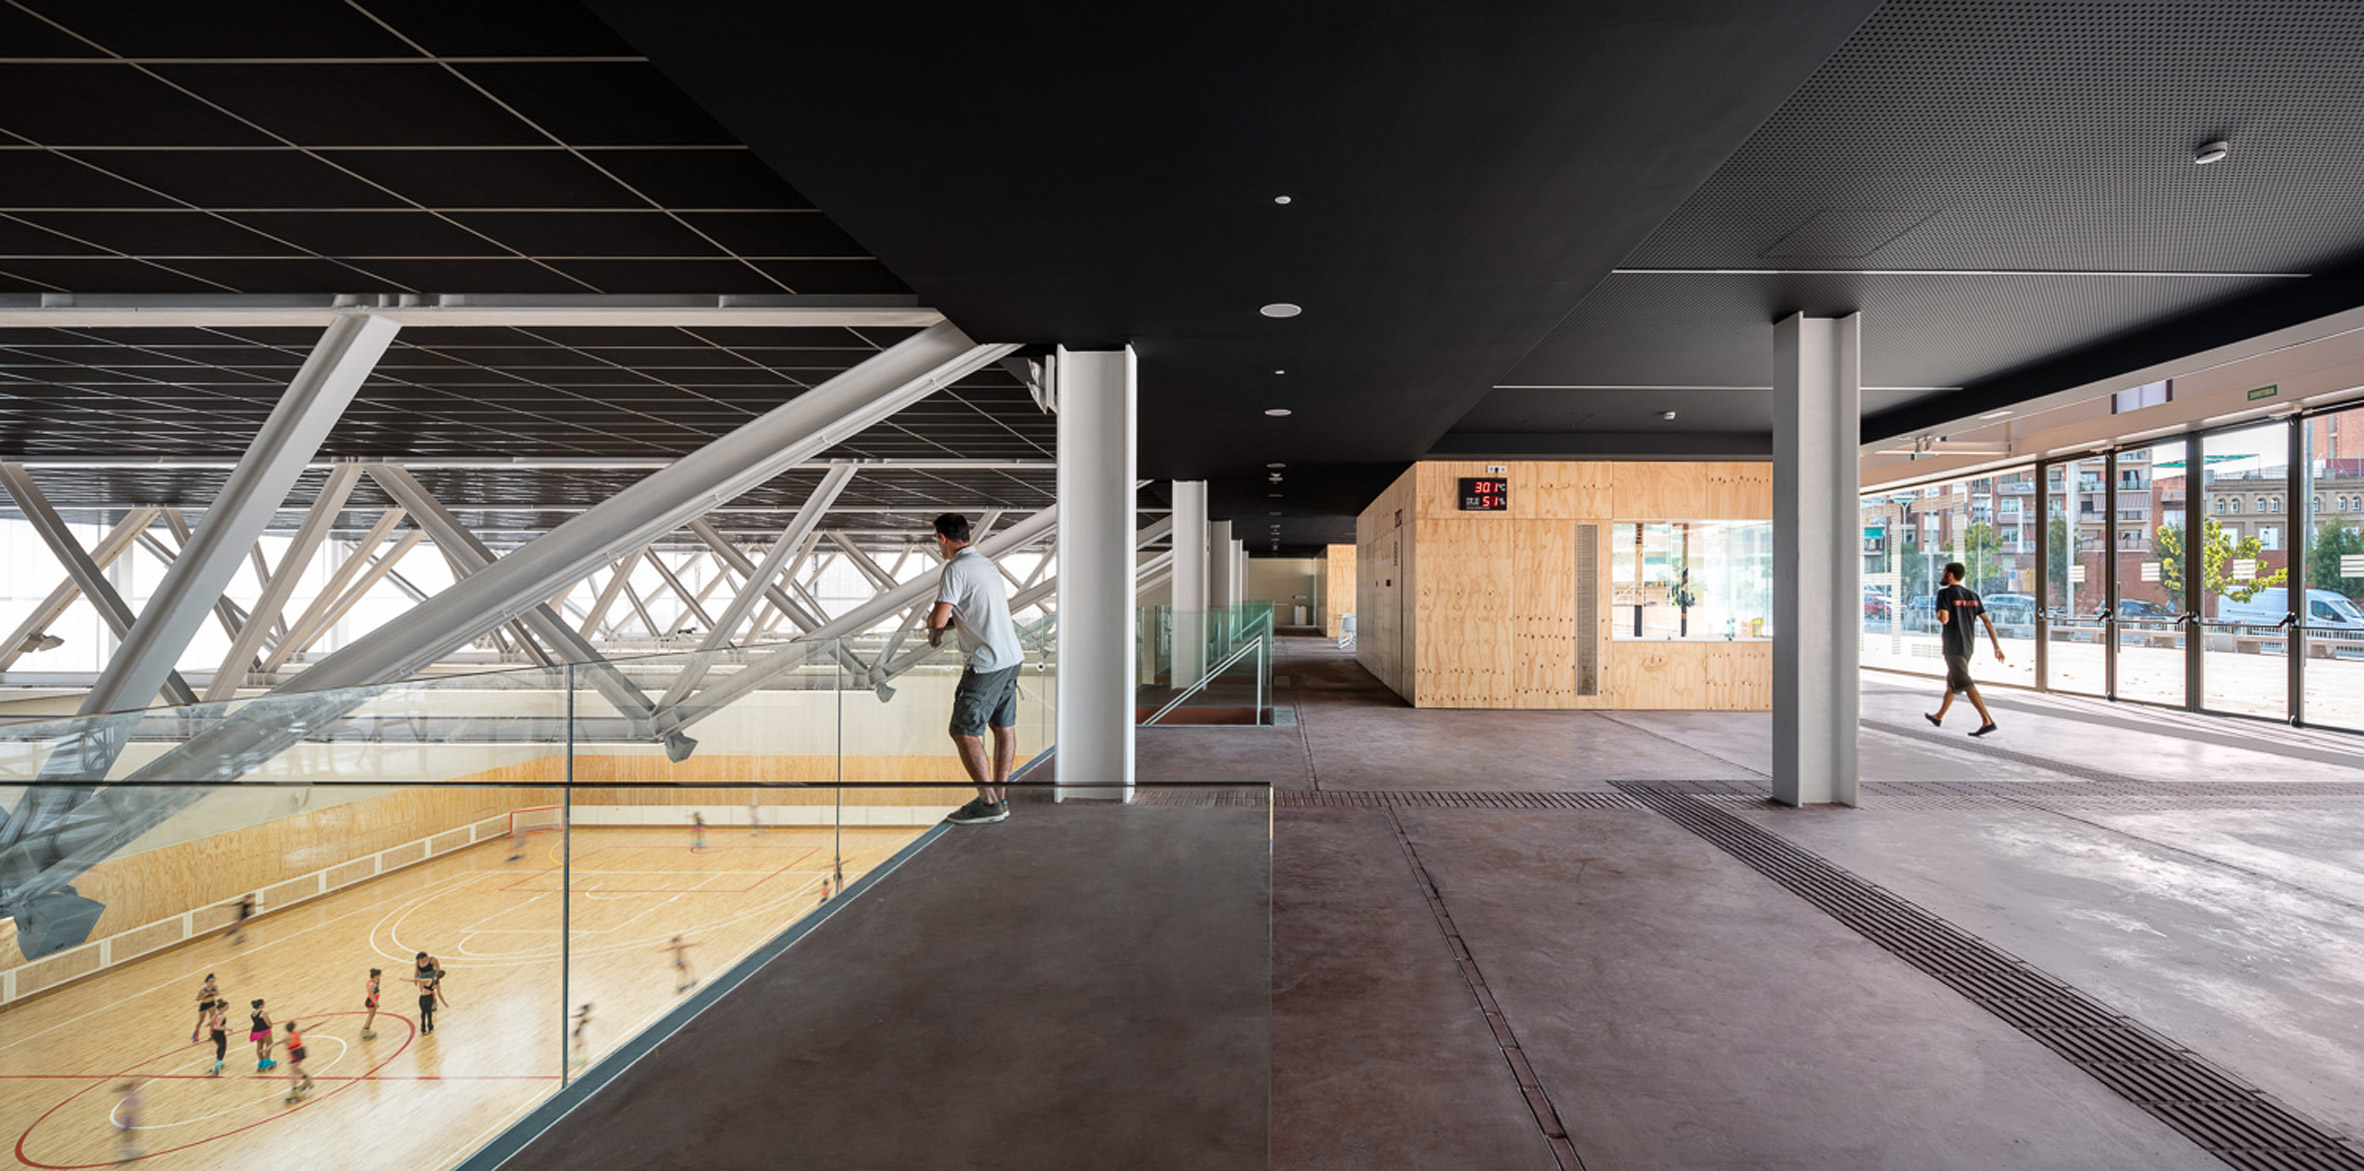 Foyer of Camp del Ferro sports centre in Barcelona